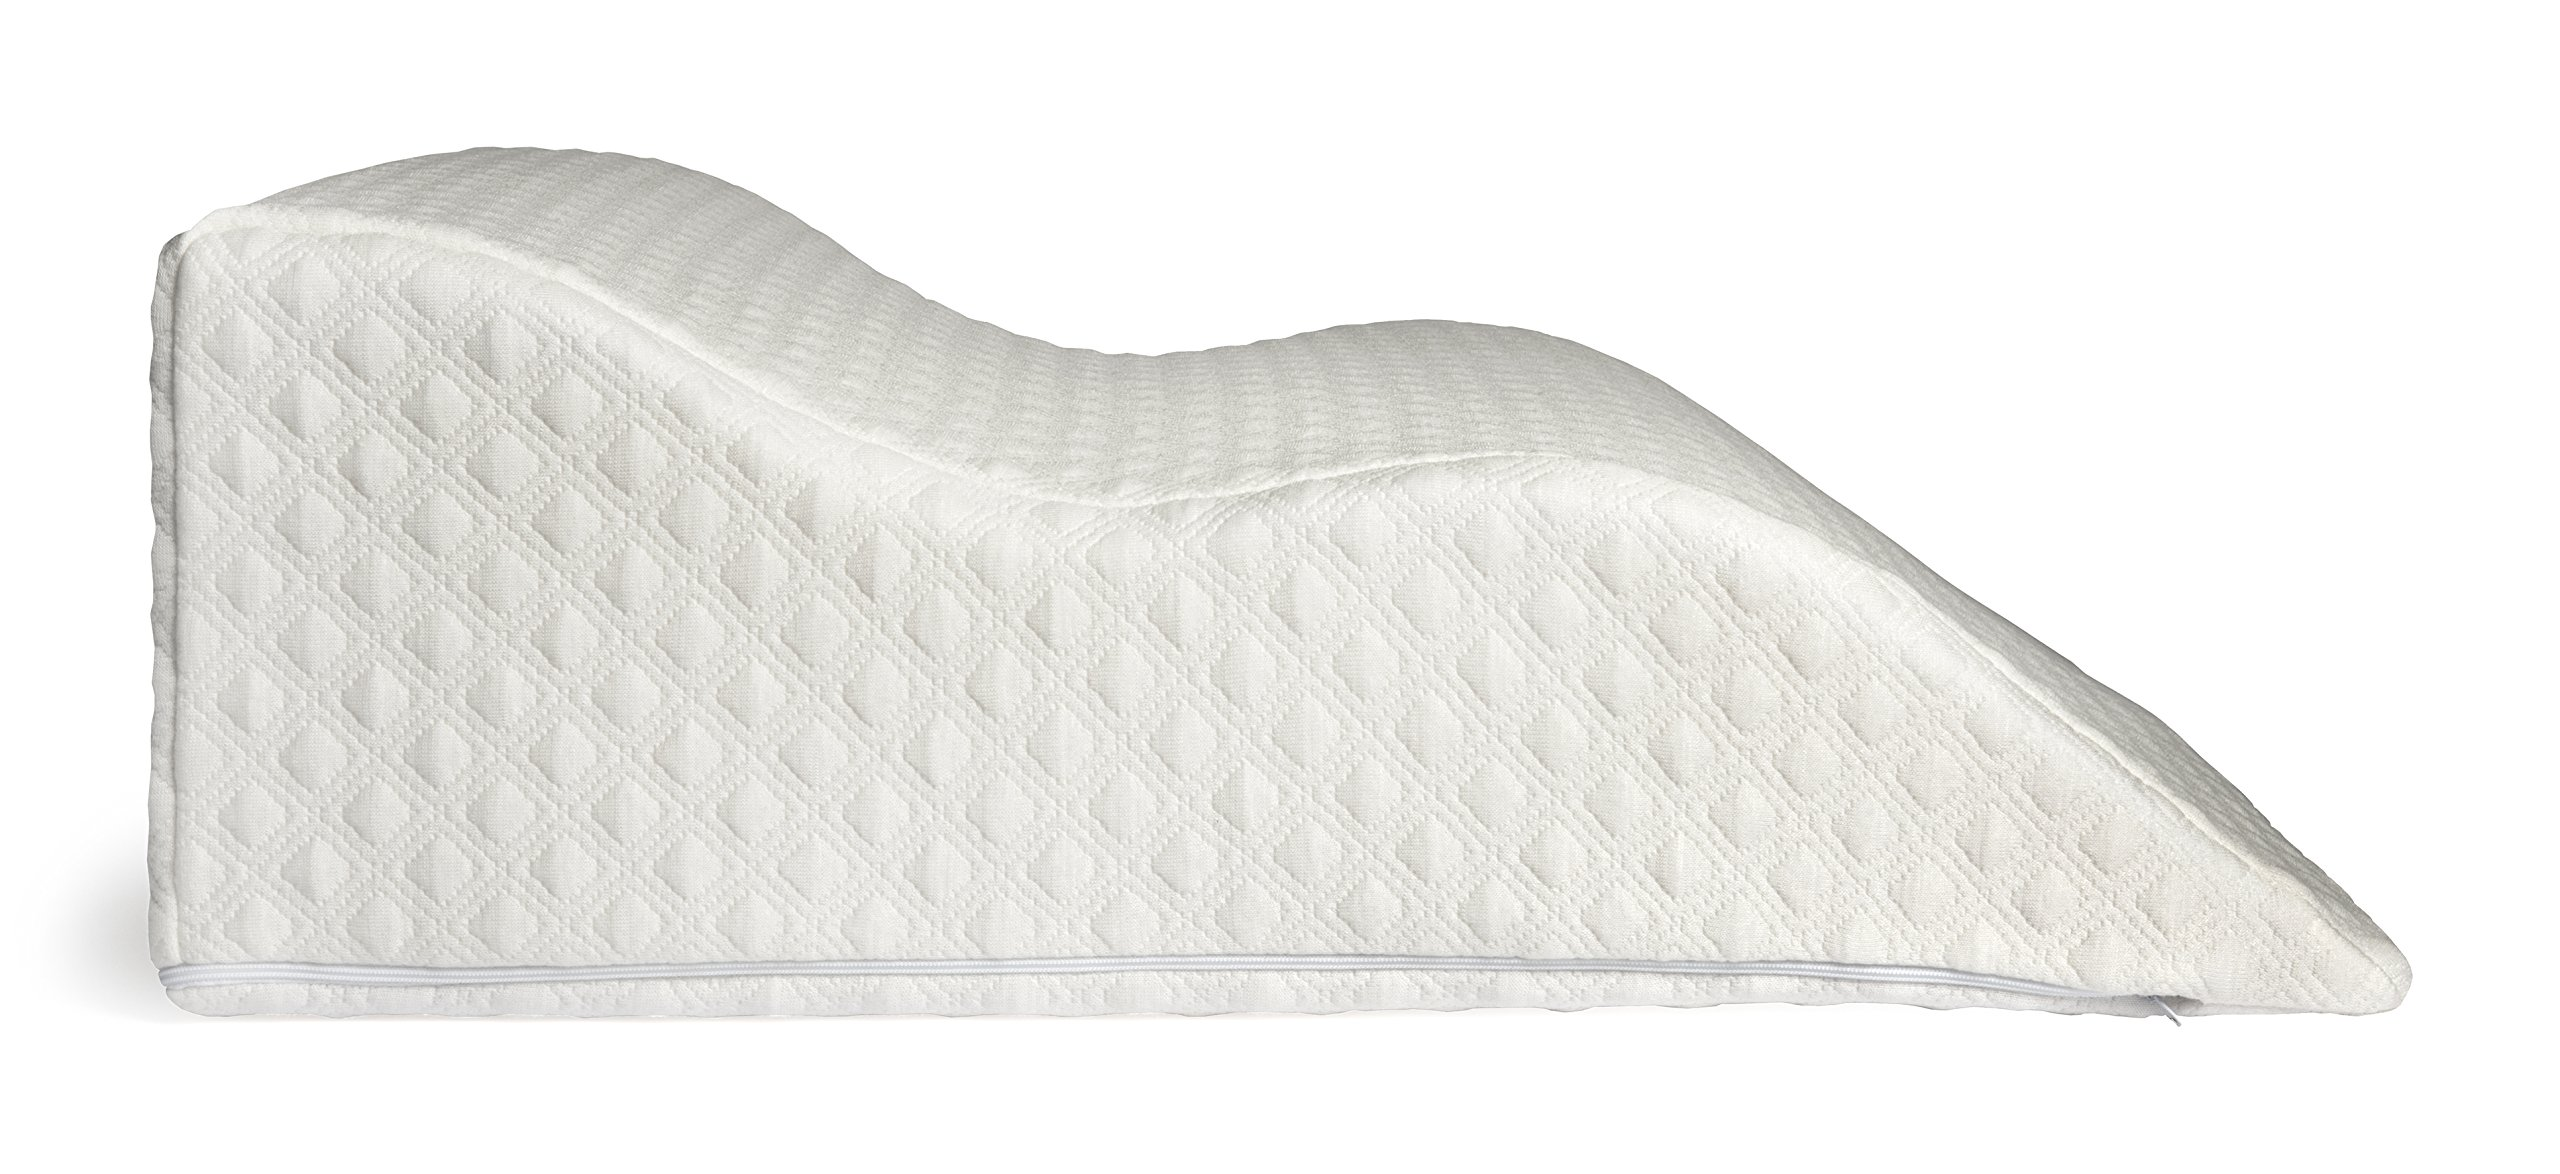 Aeris Large Memory Foam Bed Wedge Pillow For Acid Reflux